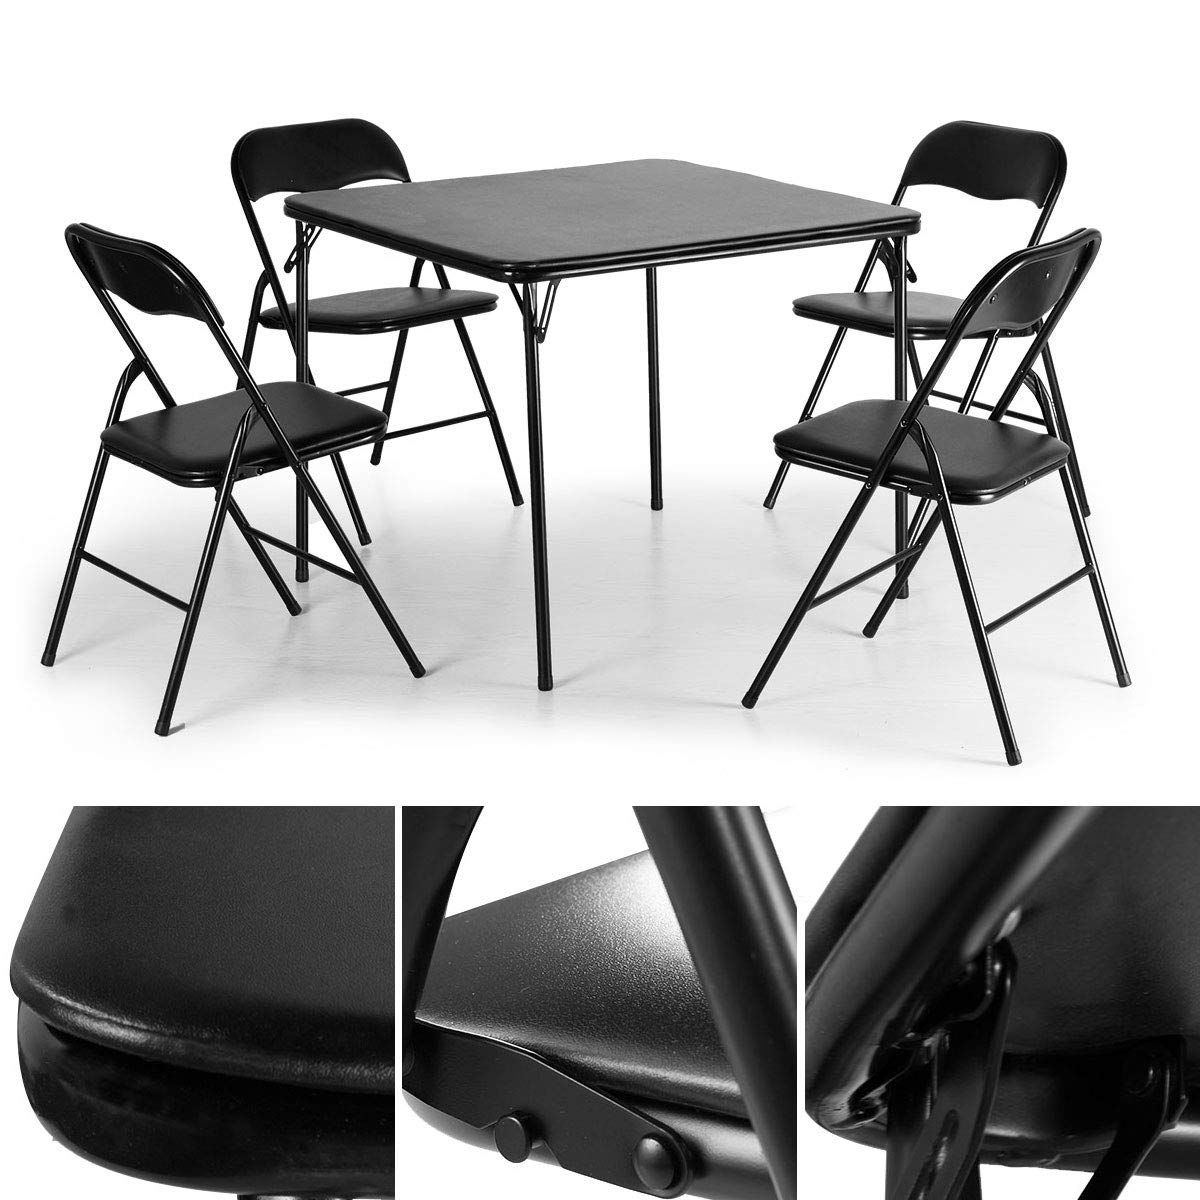 Tobbi 5piece Folding Table And Chairs Set Multipurpose Kitchen Dining Games Table Set Want To Know More In 2020 Dining Table Setting Table And Chair Sets Chair Set